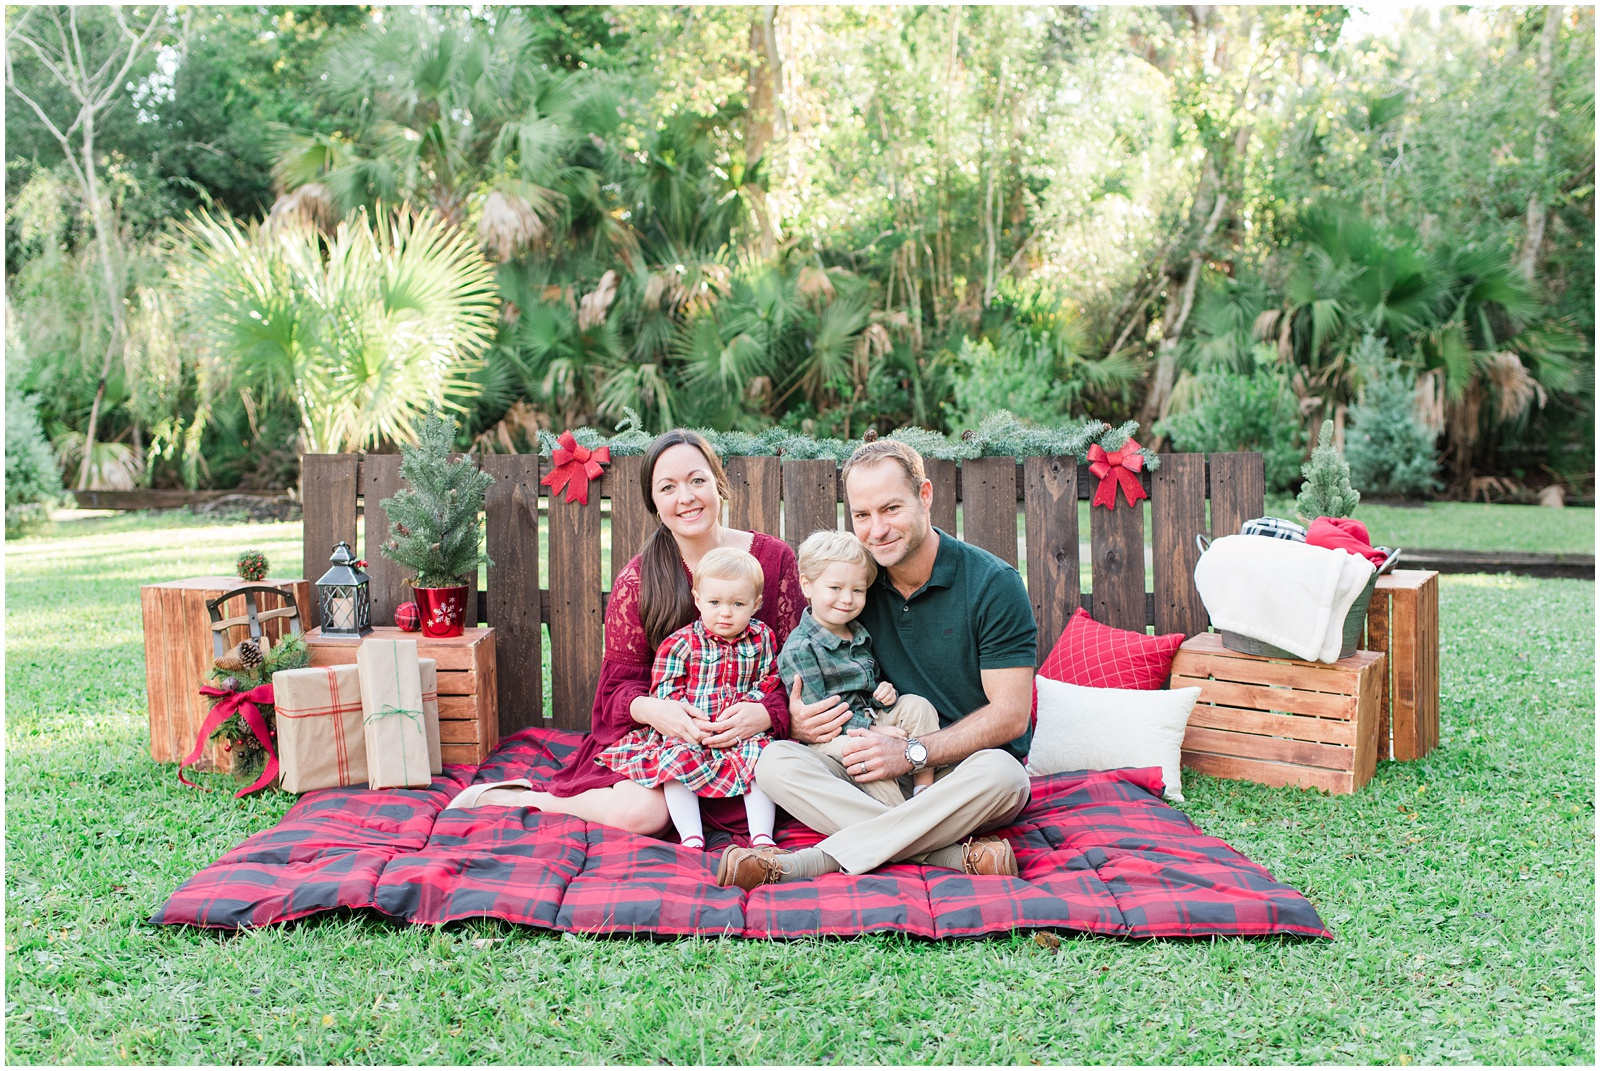 Christmas_Mini Sessions_Holidays_Howell Park_Jacksonville_Florida_32.jpg